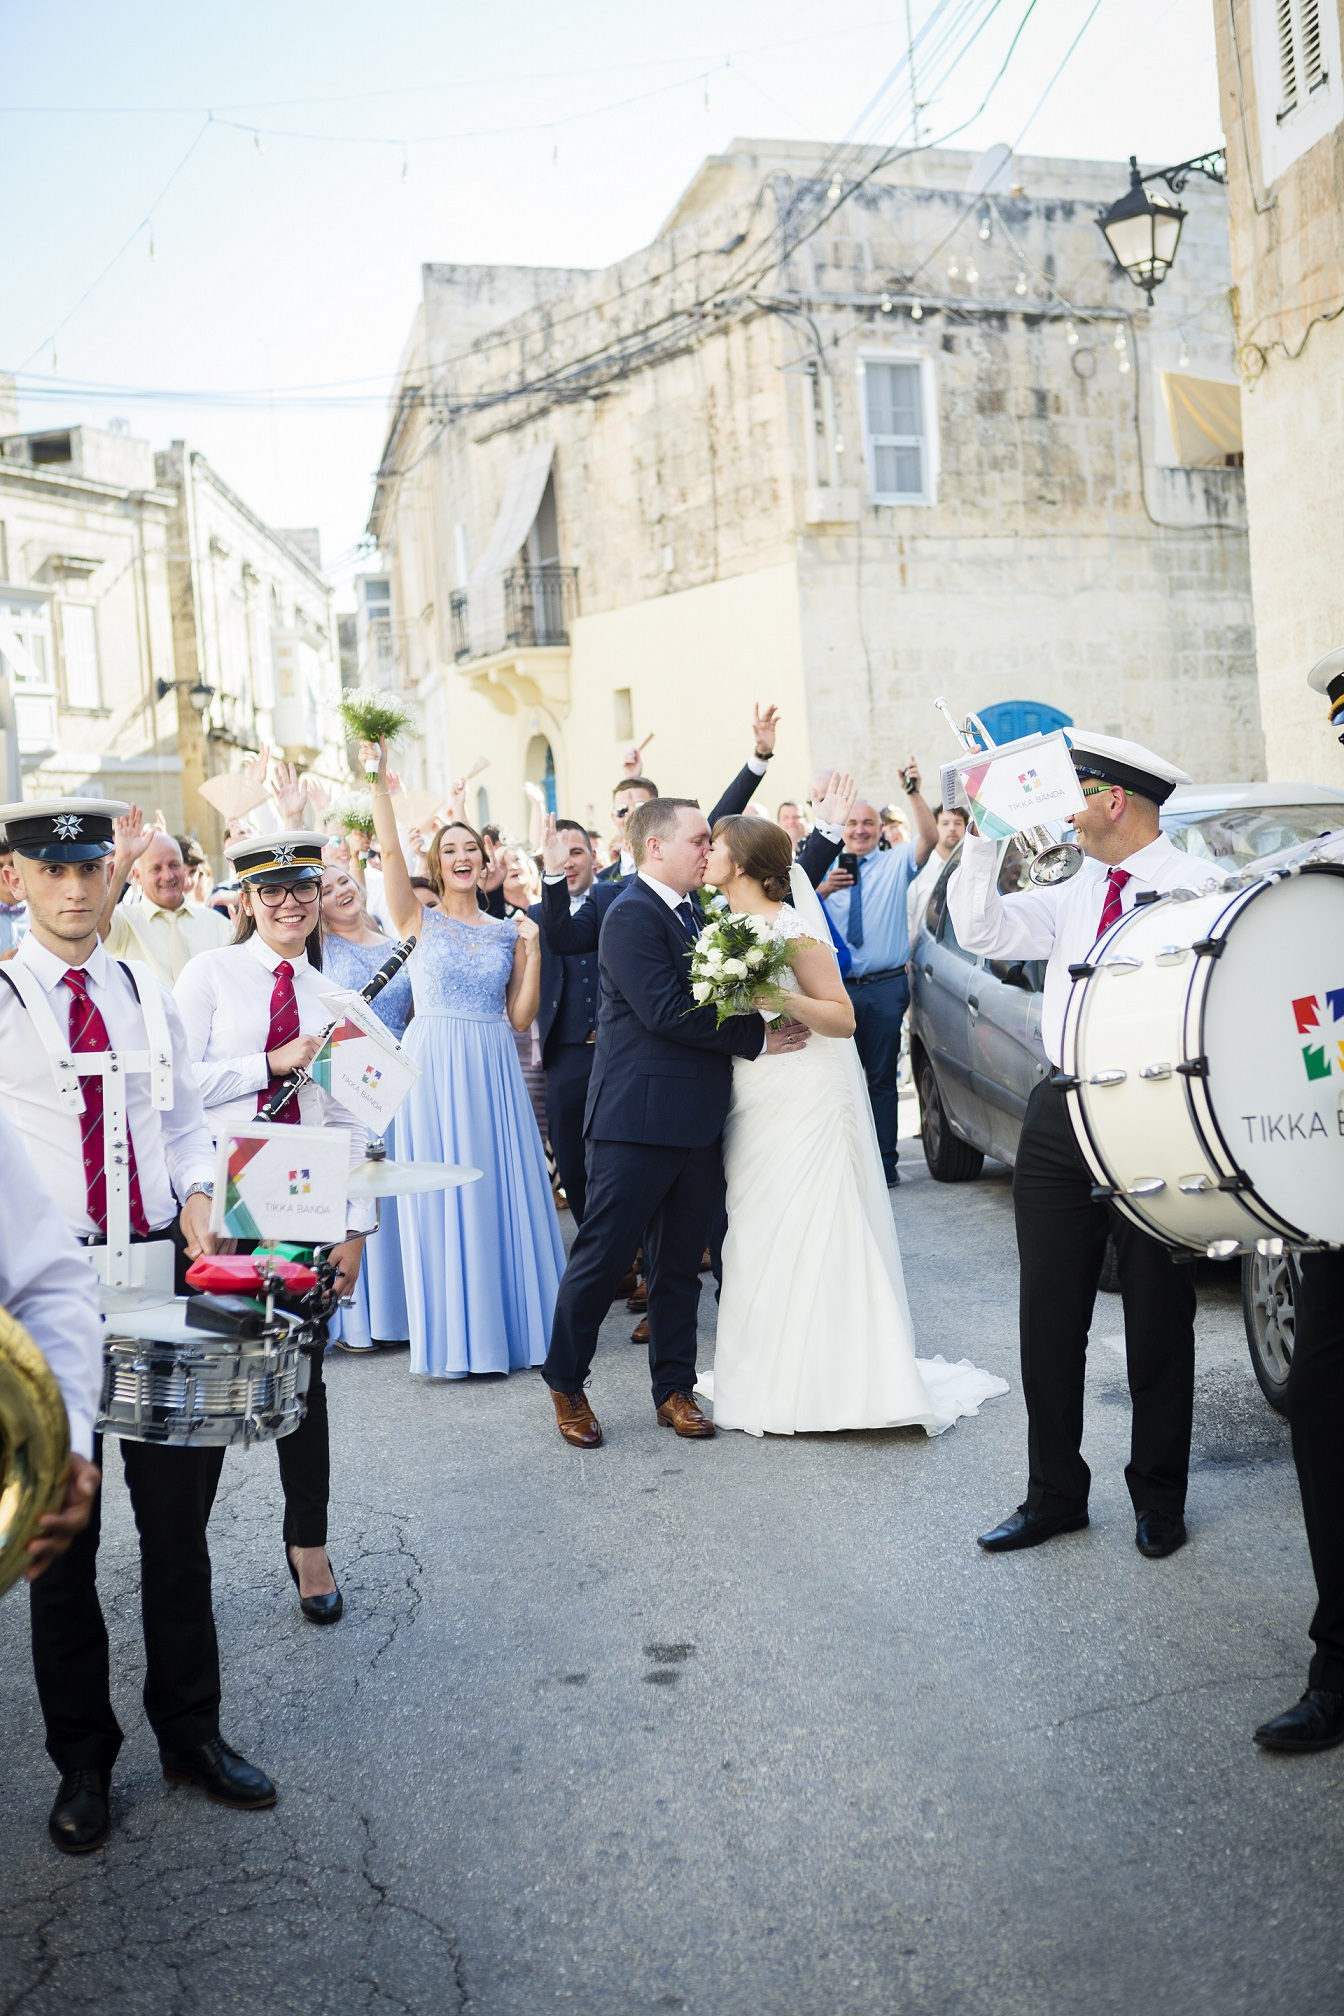 Wedding musical procession